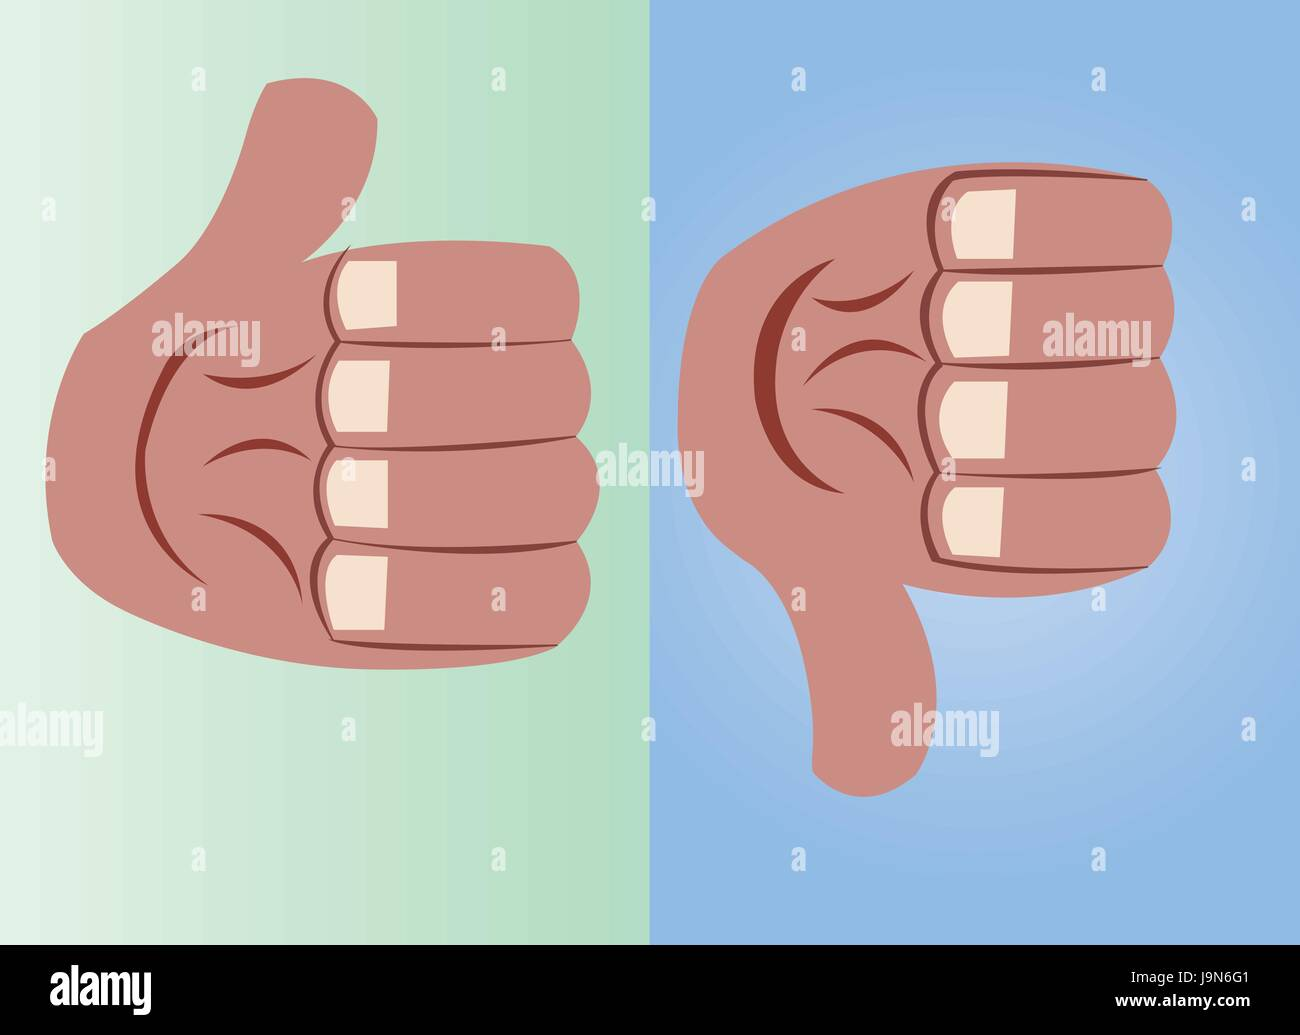 a thumb in an upward and downward pointing position, - Stock Image